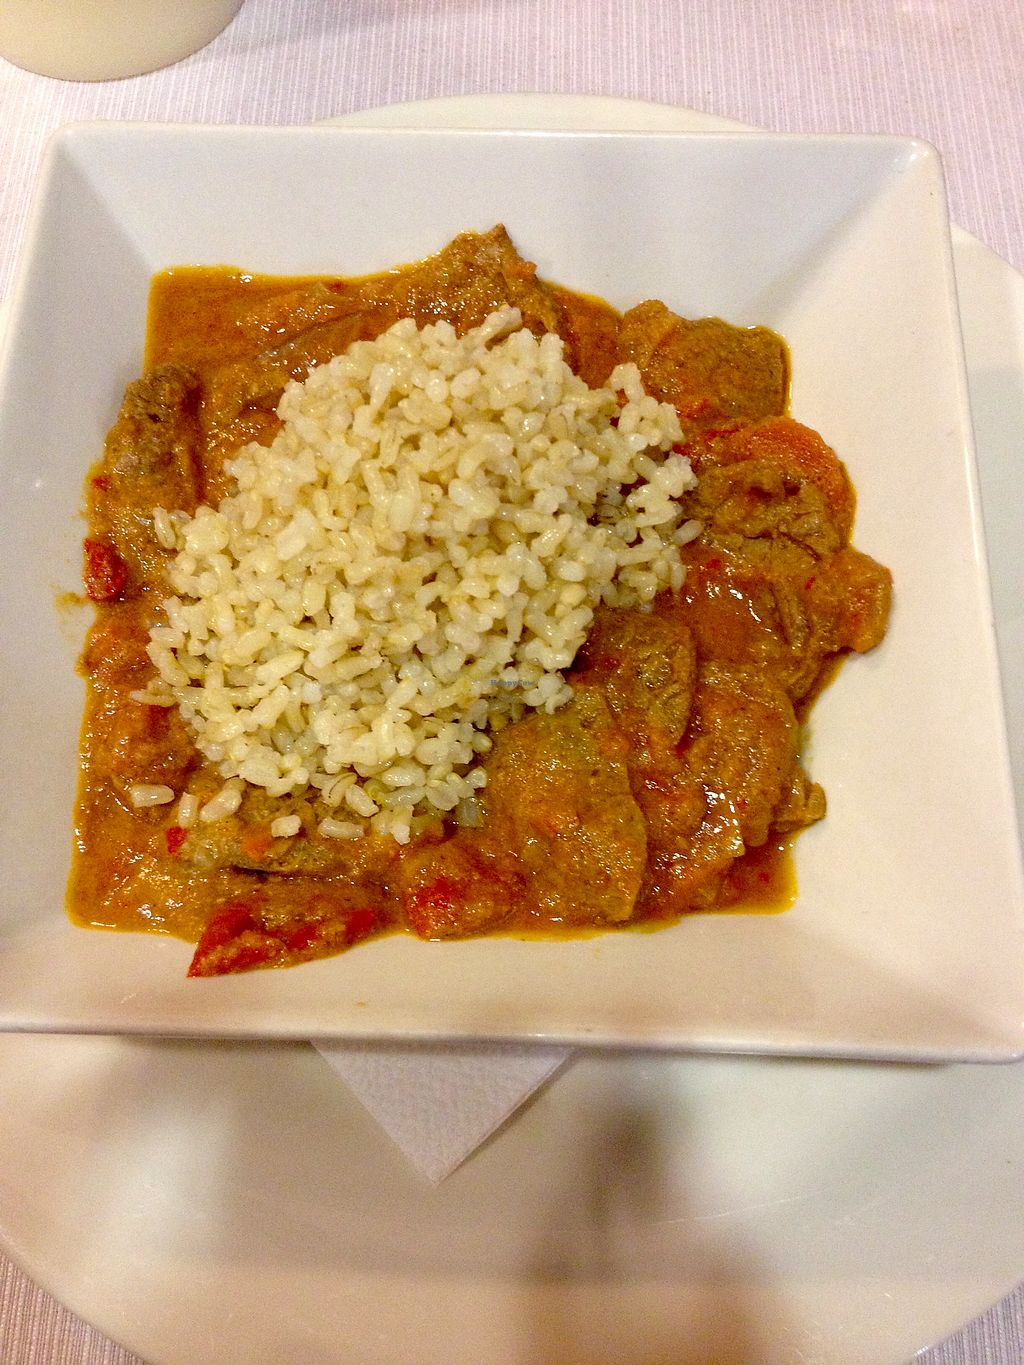 "Photo of Landare  by <a href=""/members/profile/LauraKiel"">LauraKiel</a> <br/>Main dish with soymeat and tomato sauce  <br/> October 21, 2017  - <a href='/contact/abuse/image/18912/317306'>Report</a>"